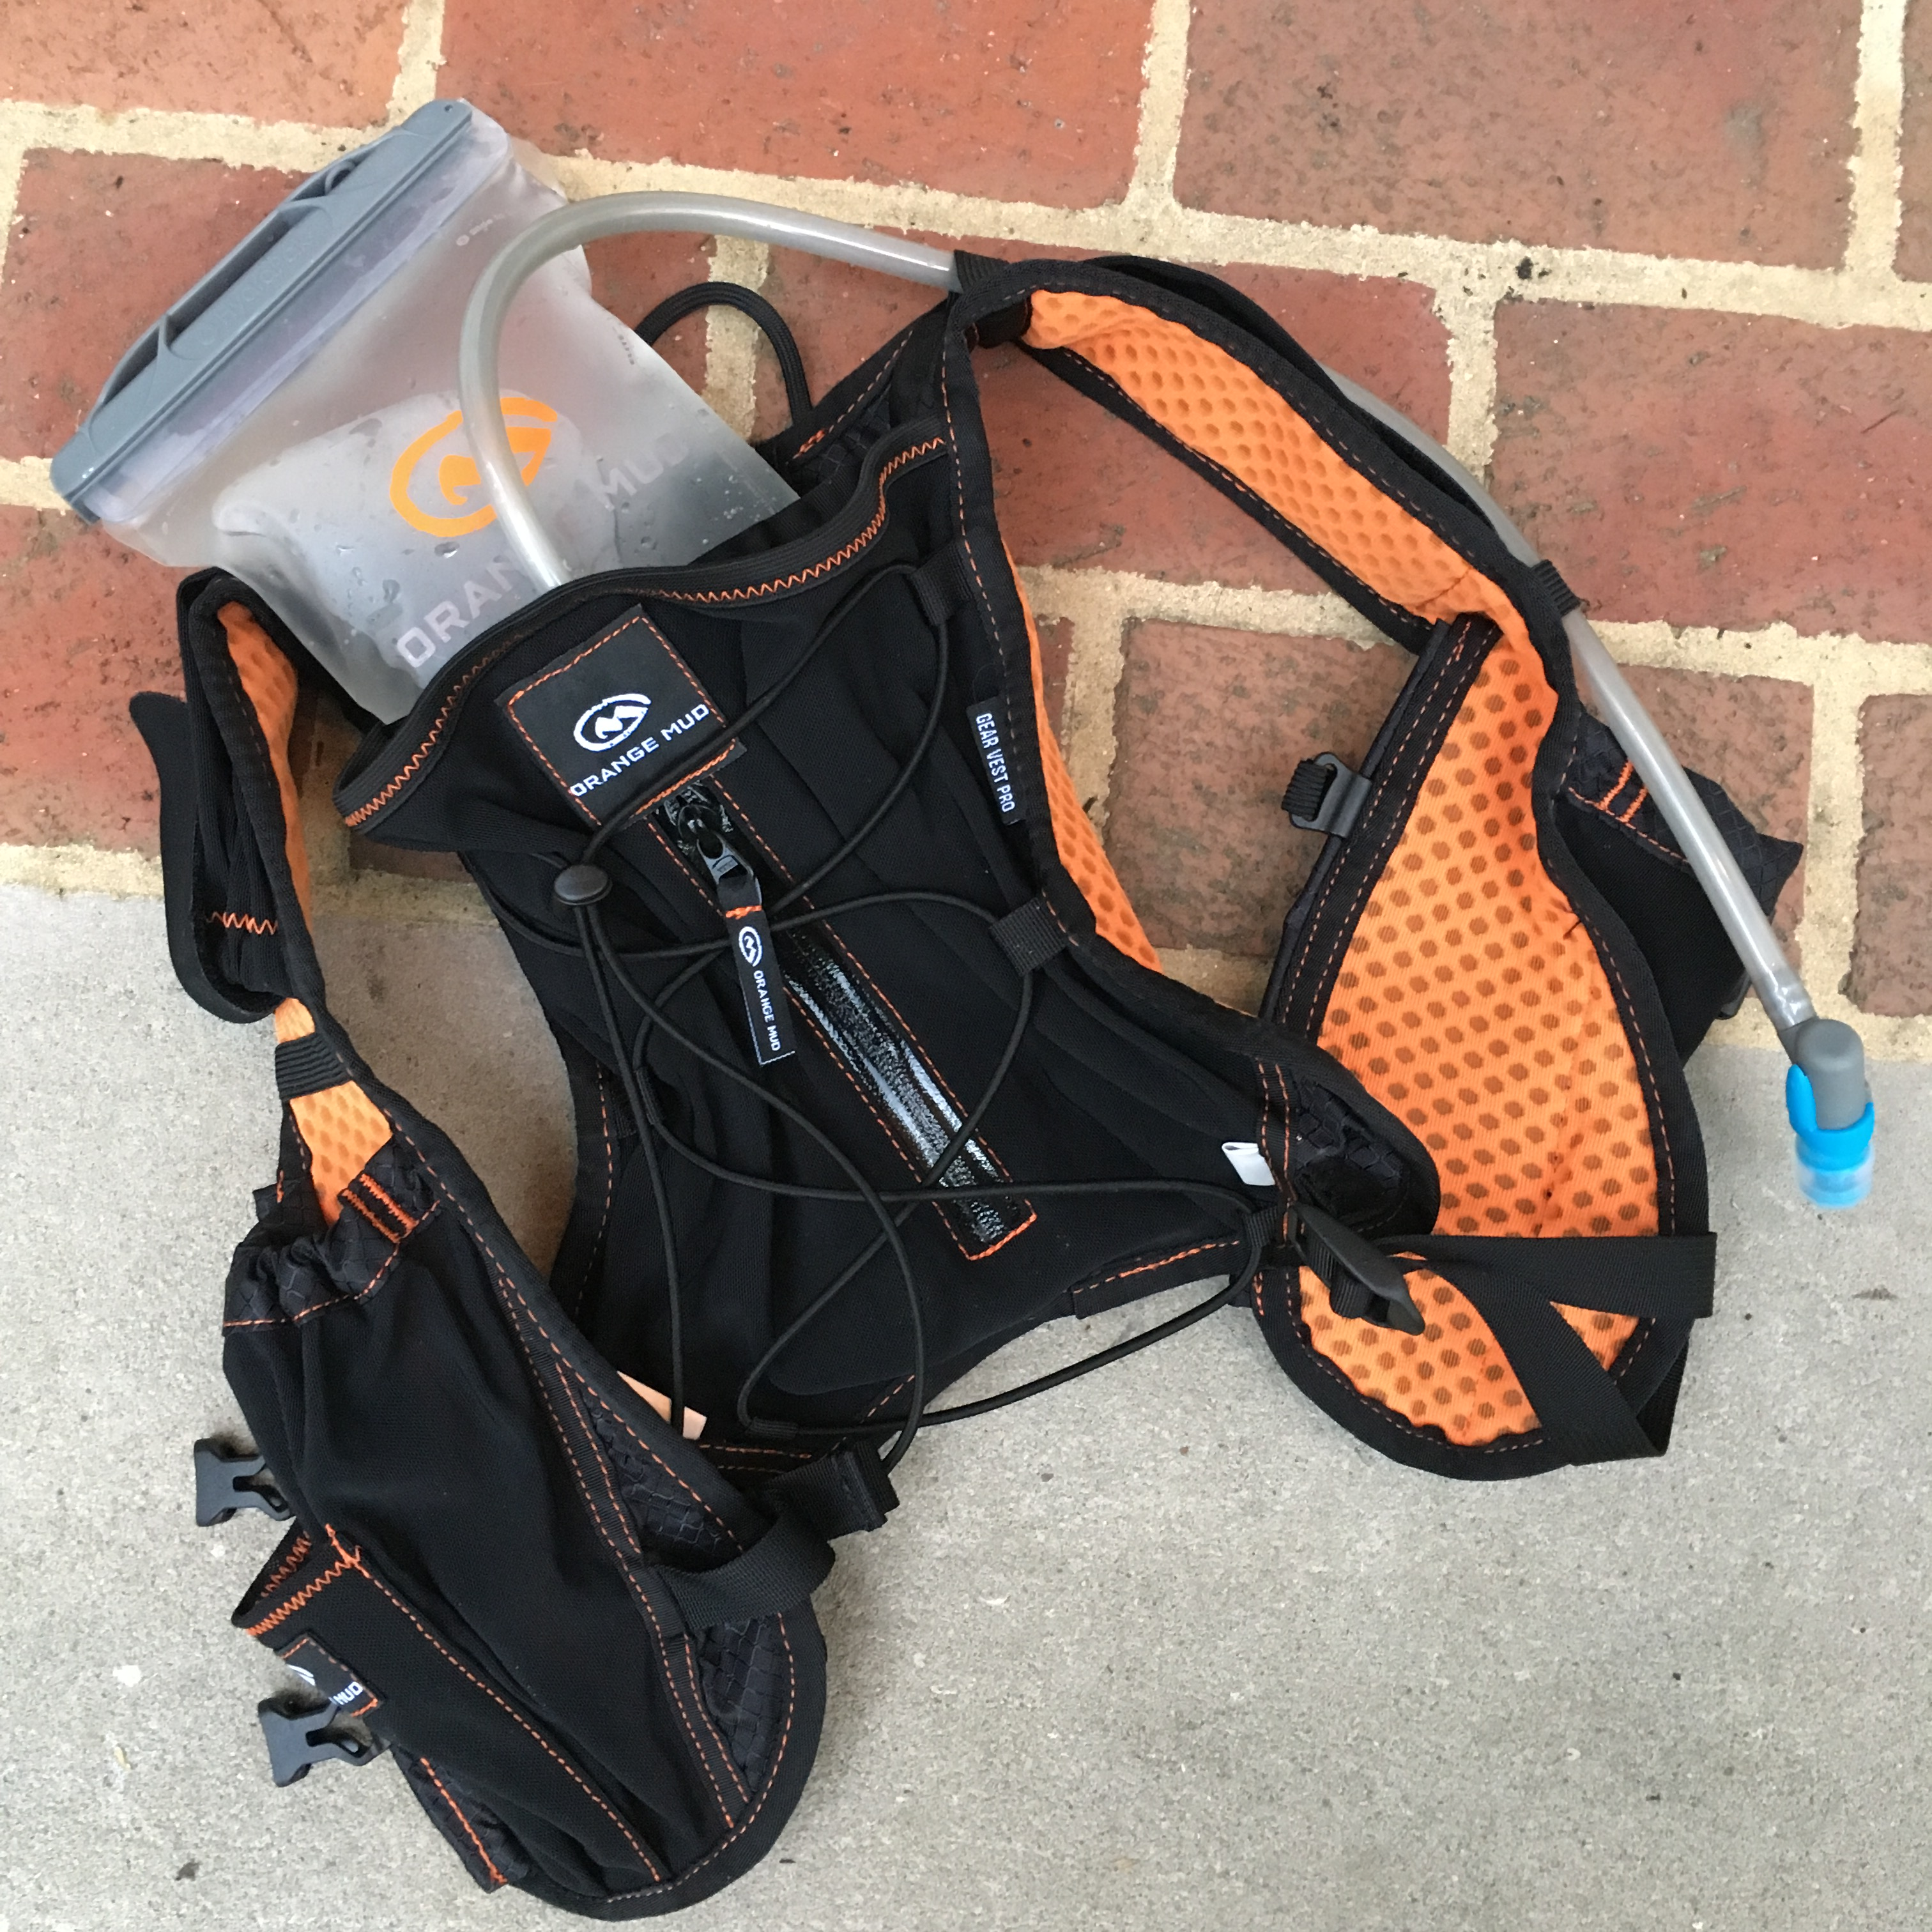 Orange Mud Gear Vest Pro, showing bladder holding water, against brick/concrete background.